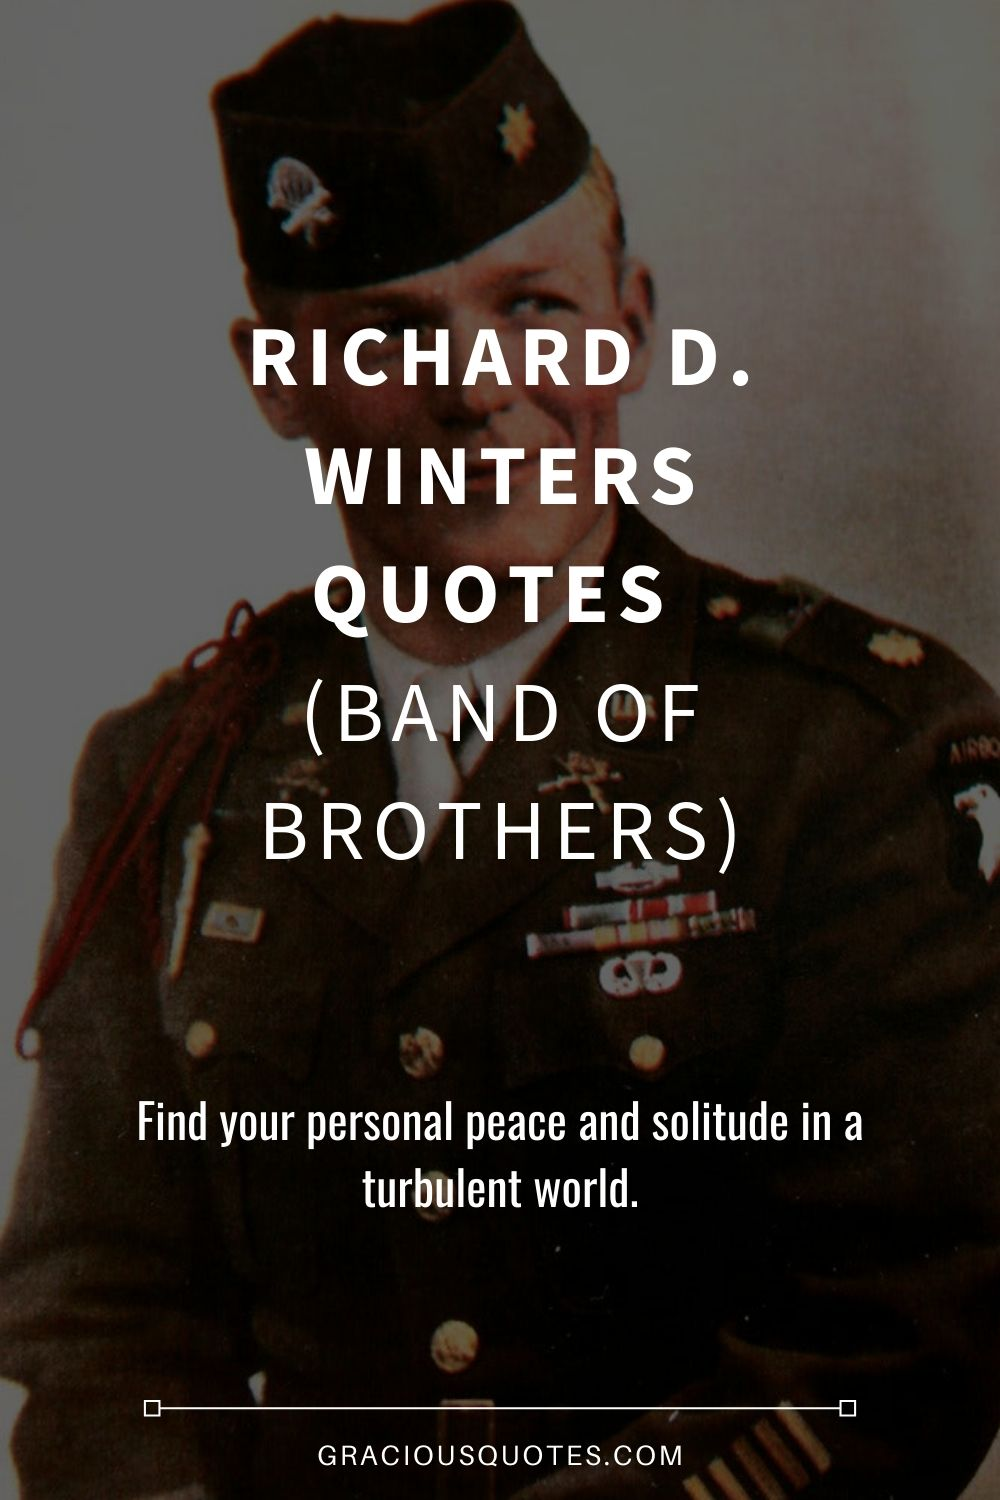 Richard D. Winters Quotes (BAND OF BROTHERS) - Gracious Quotes